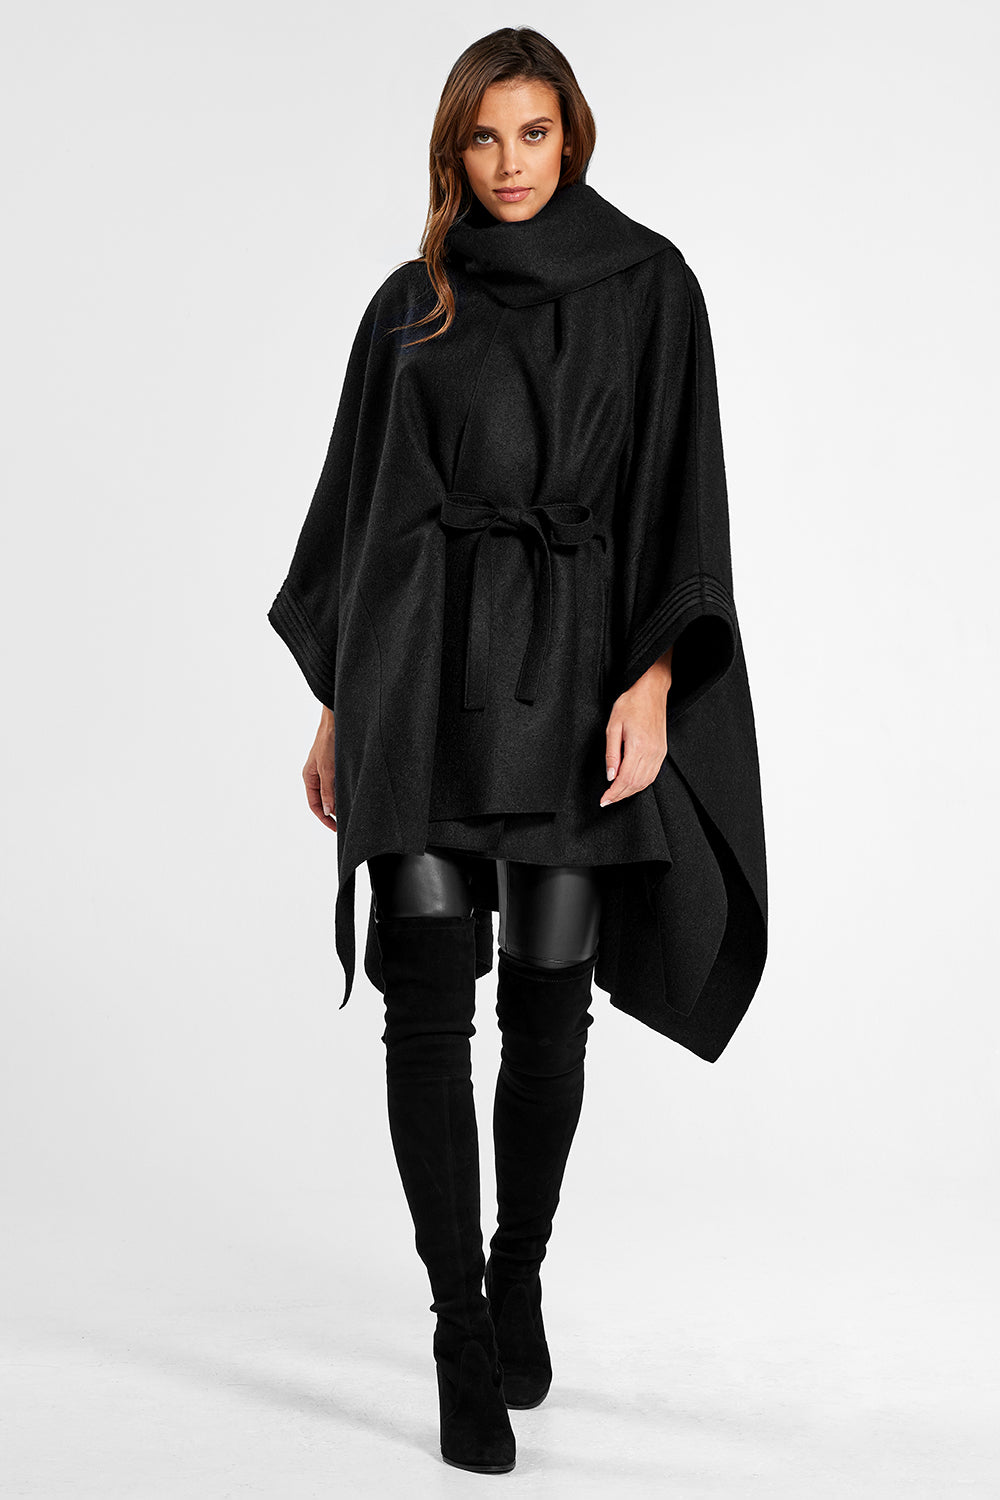 Sentaler Poncho with Shawl Collar and Belt featured in Superfine Alpaca and available in Black. Seen from front.